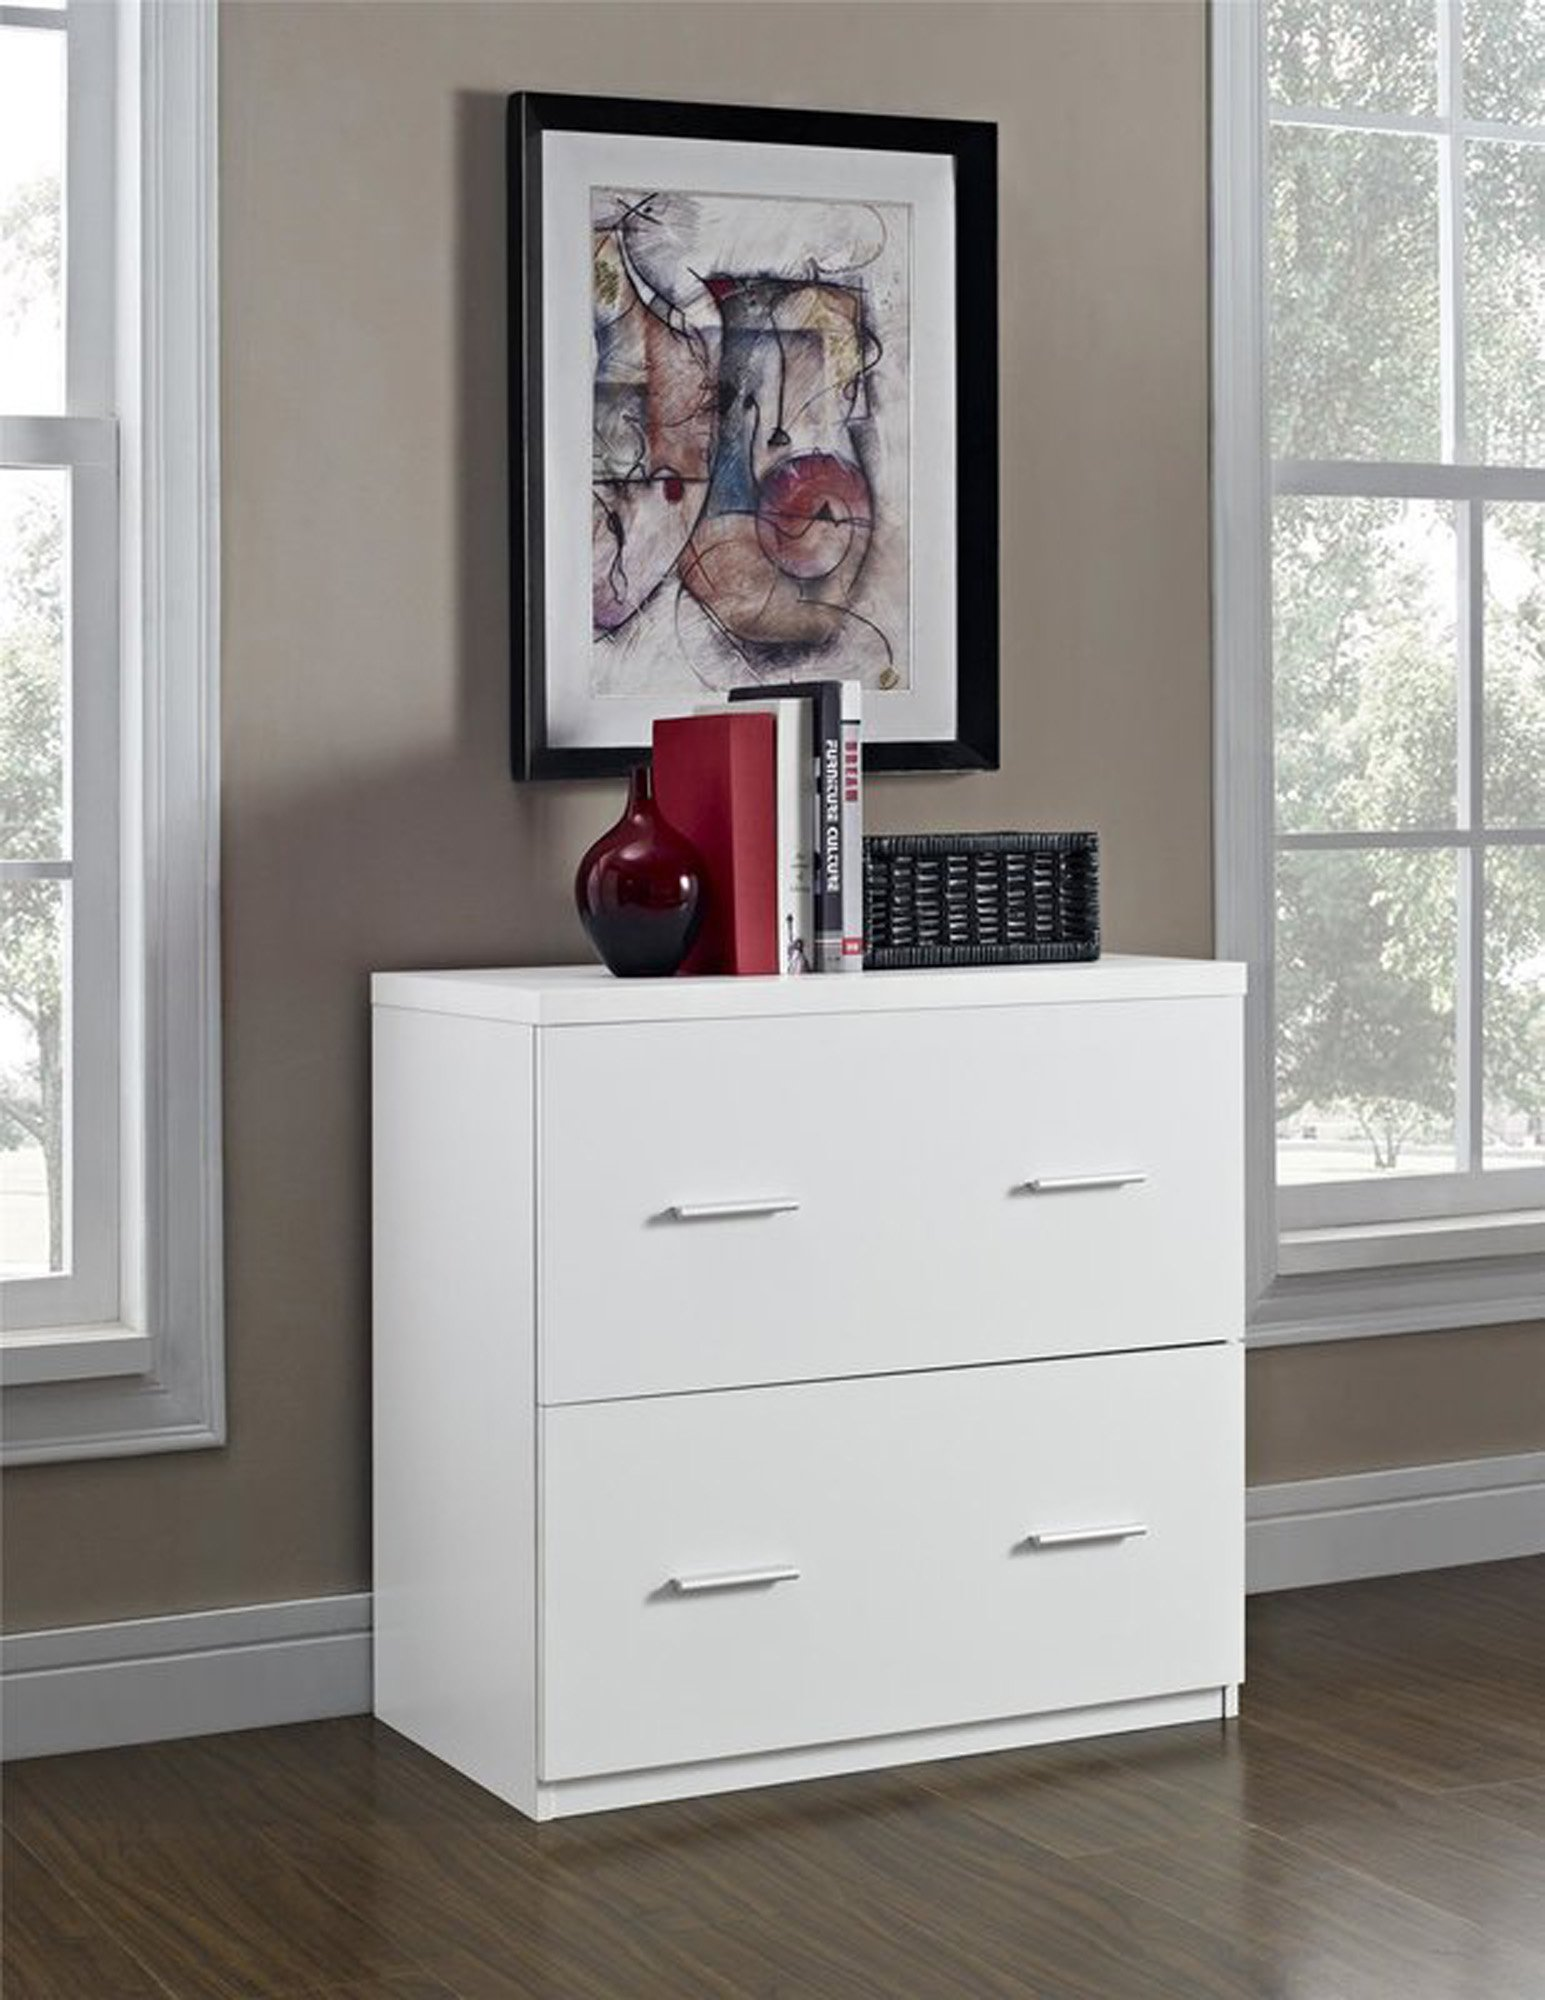 Lateral File Cabinet Filling Organizer with 2 Storage Drawers (White)